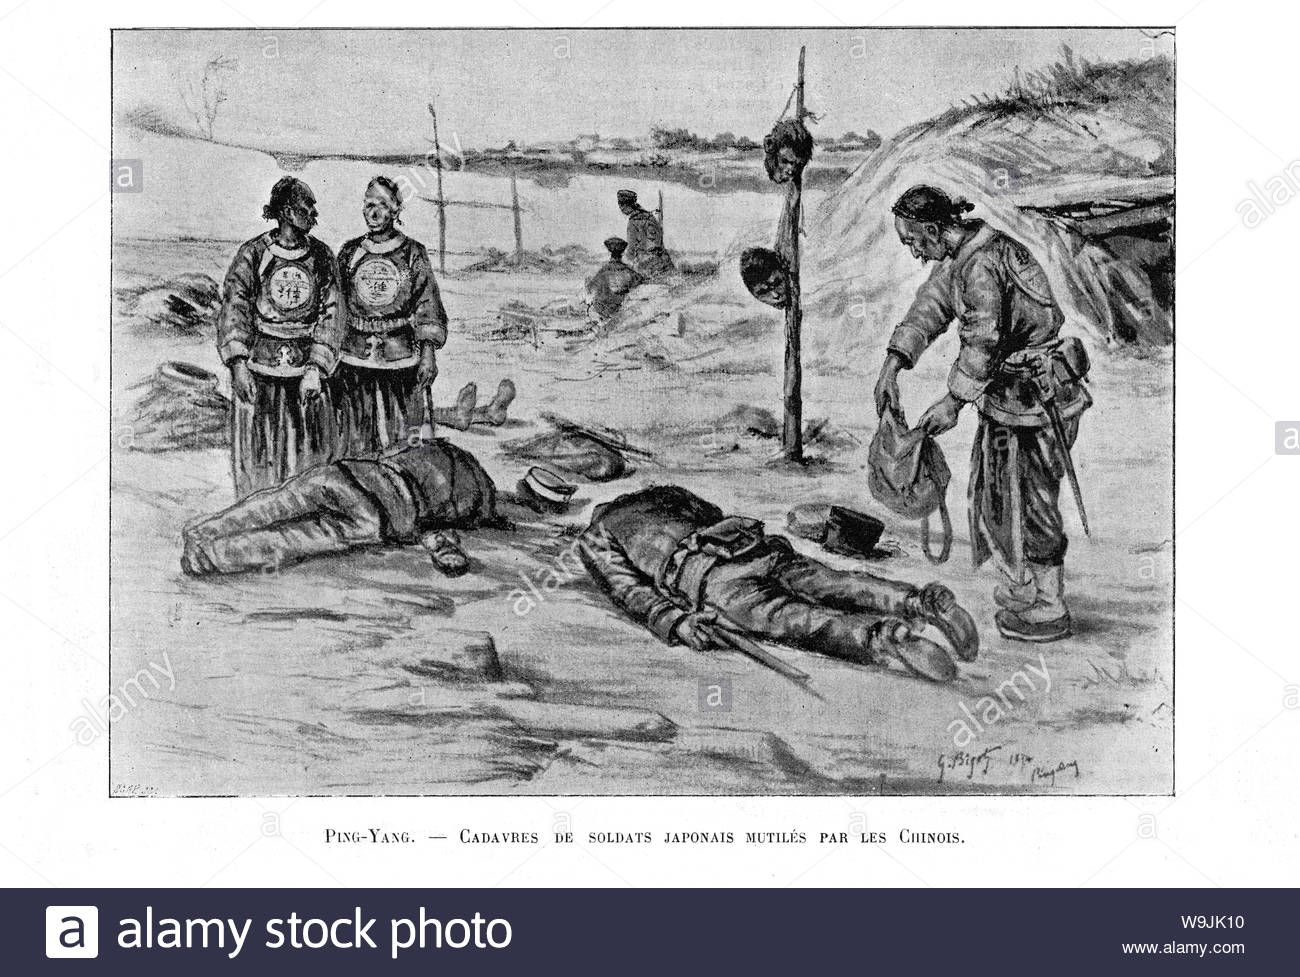 Download This Stock Image 1890s Japan First Sino Japanese War 1894 1895 Japanese Soldiers Mutilated By Chinese Tr Vintage Newspaper Japanese Japan